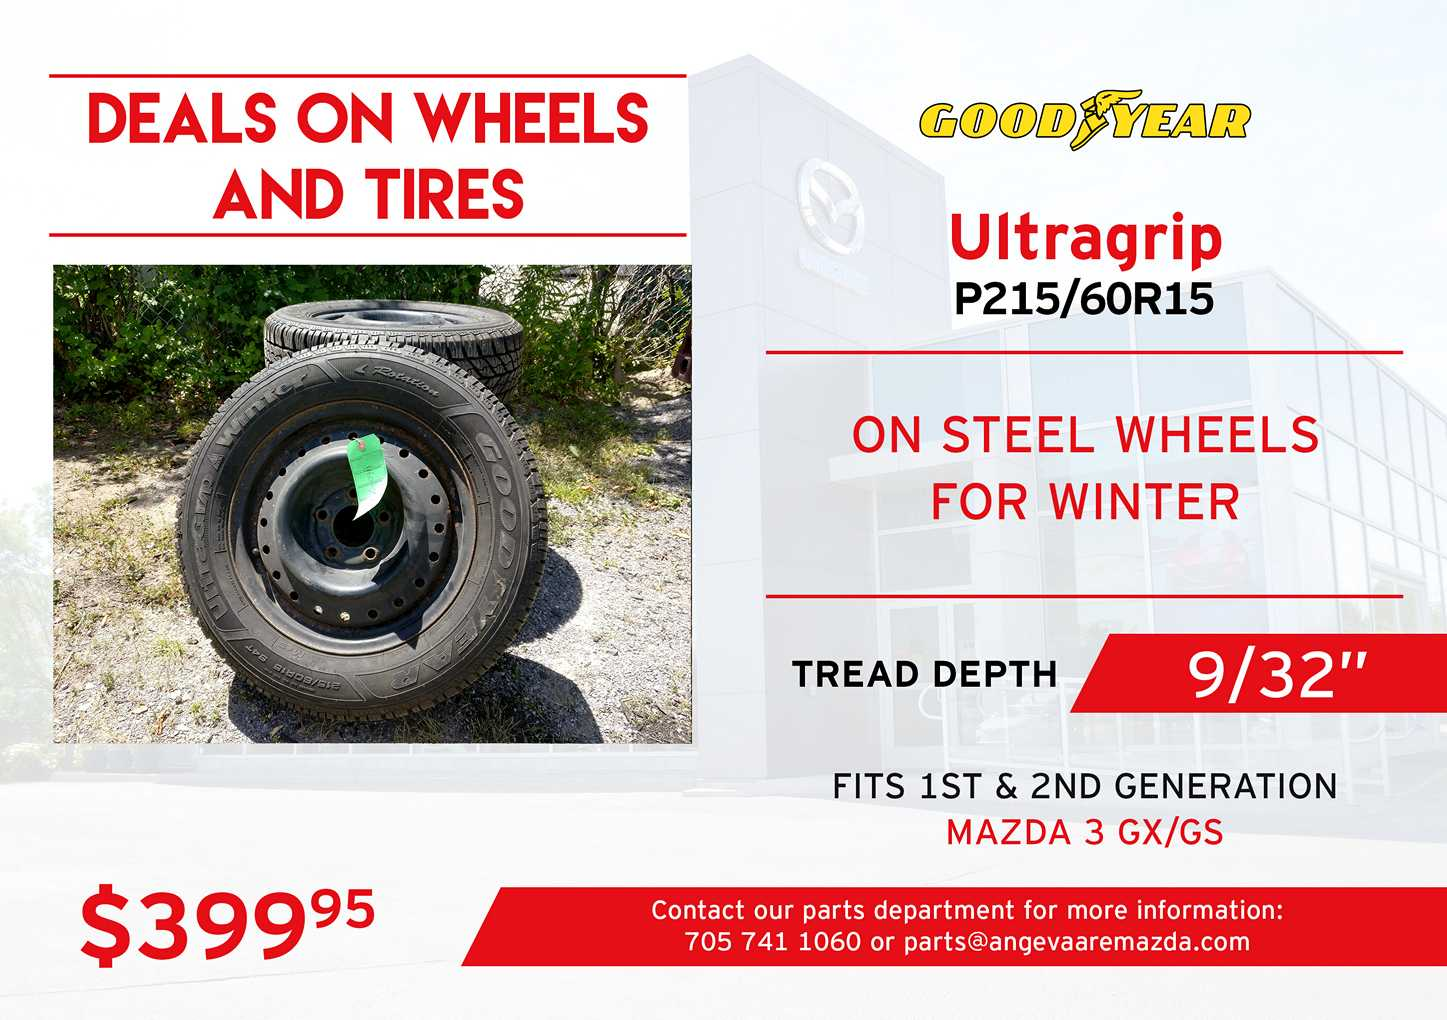 Goodyear Ultragrip tires on steel wheels, P215/60R15. Great winter tires with a tread depth of 9/32